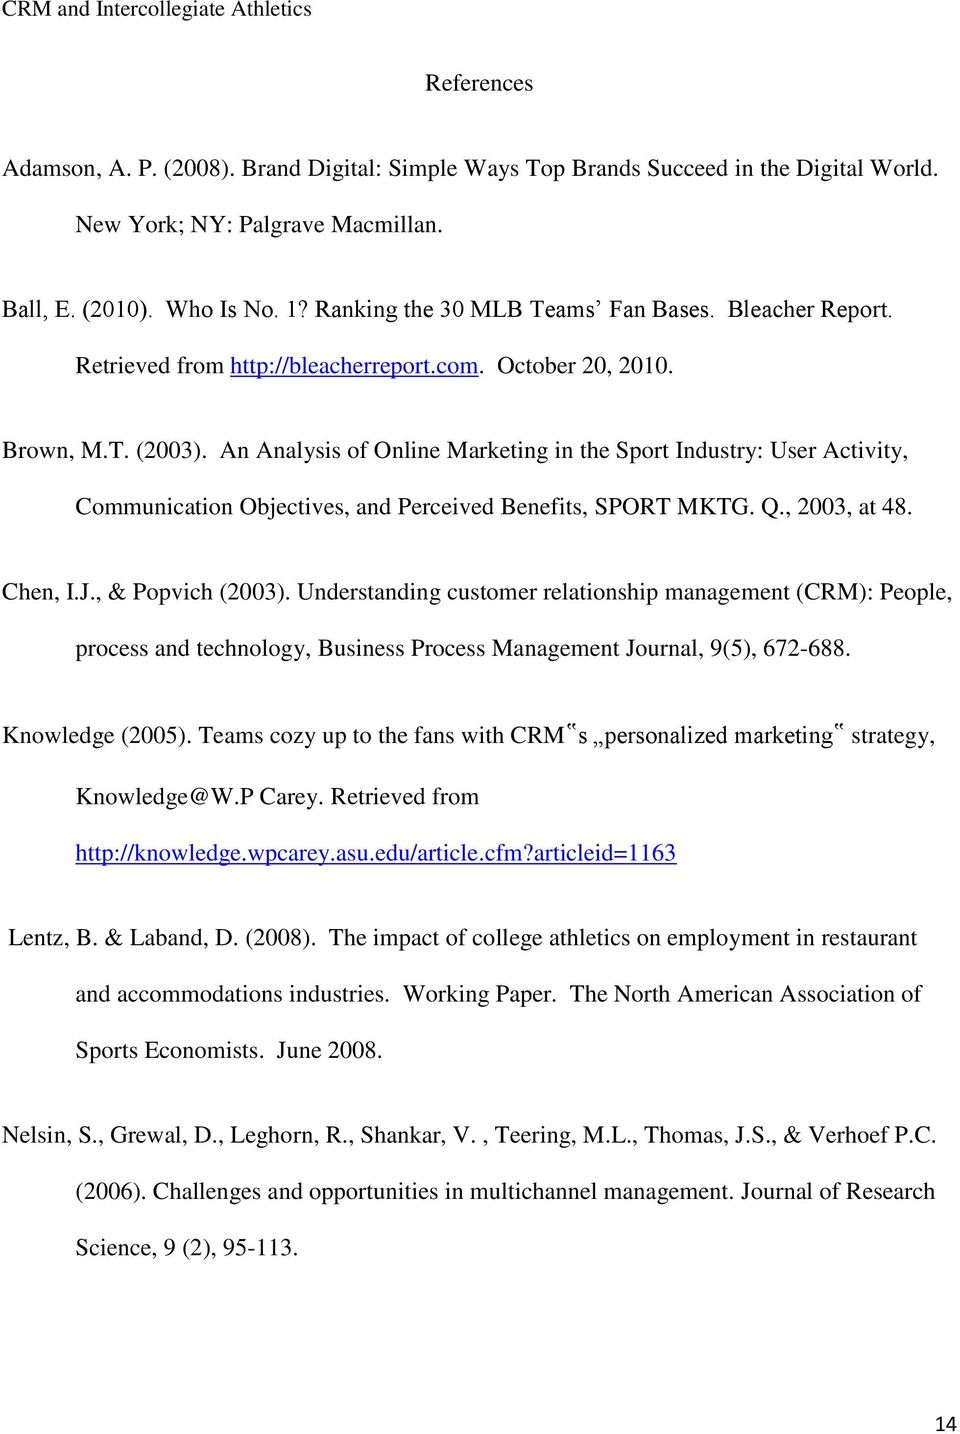 An Analysis of Online Marketing in the Sport Industry: User Activity, Communication Objectives, and Perceived Benefits, SPORT MKTG. Q., 2003, at 48. Chen, I.J., & Popvich (2003).